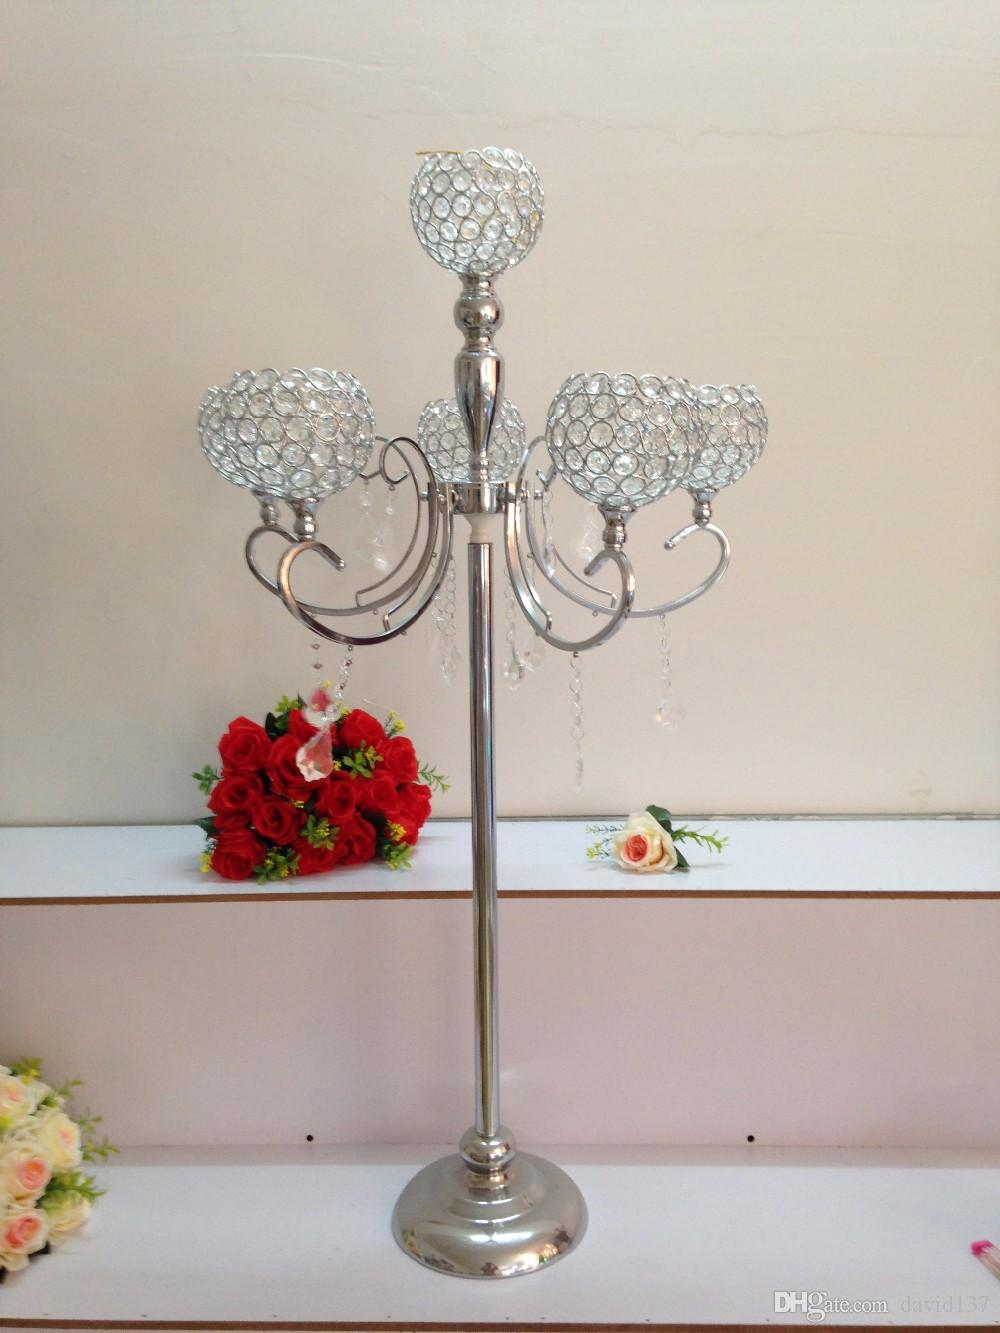 Round Tall Trumpet Glass Vases Wedding Centerpiece Decorations For Birthday Parties Decorations